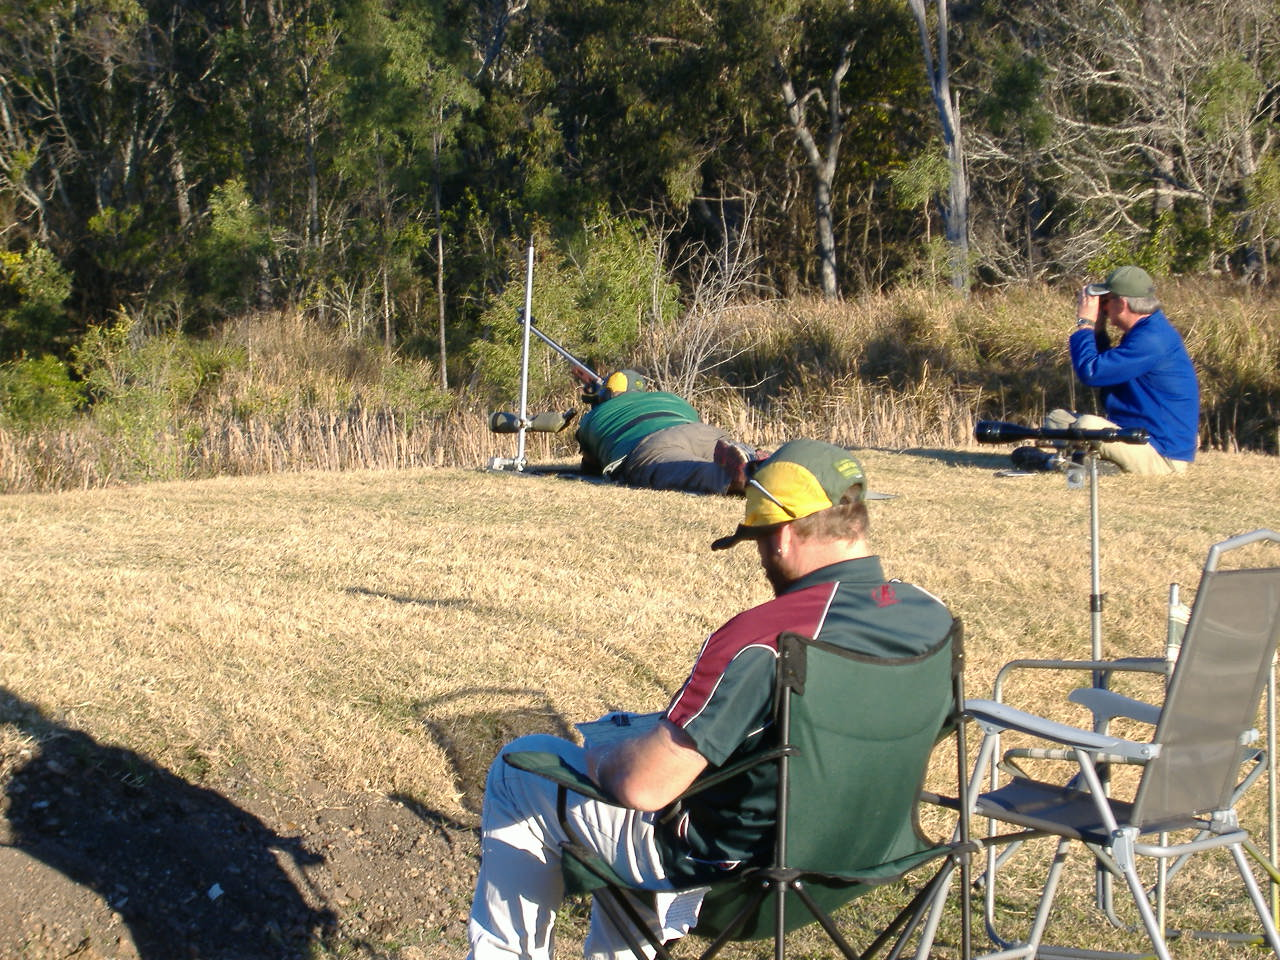 Ipswich rifle club members score for fellow shooters